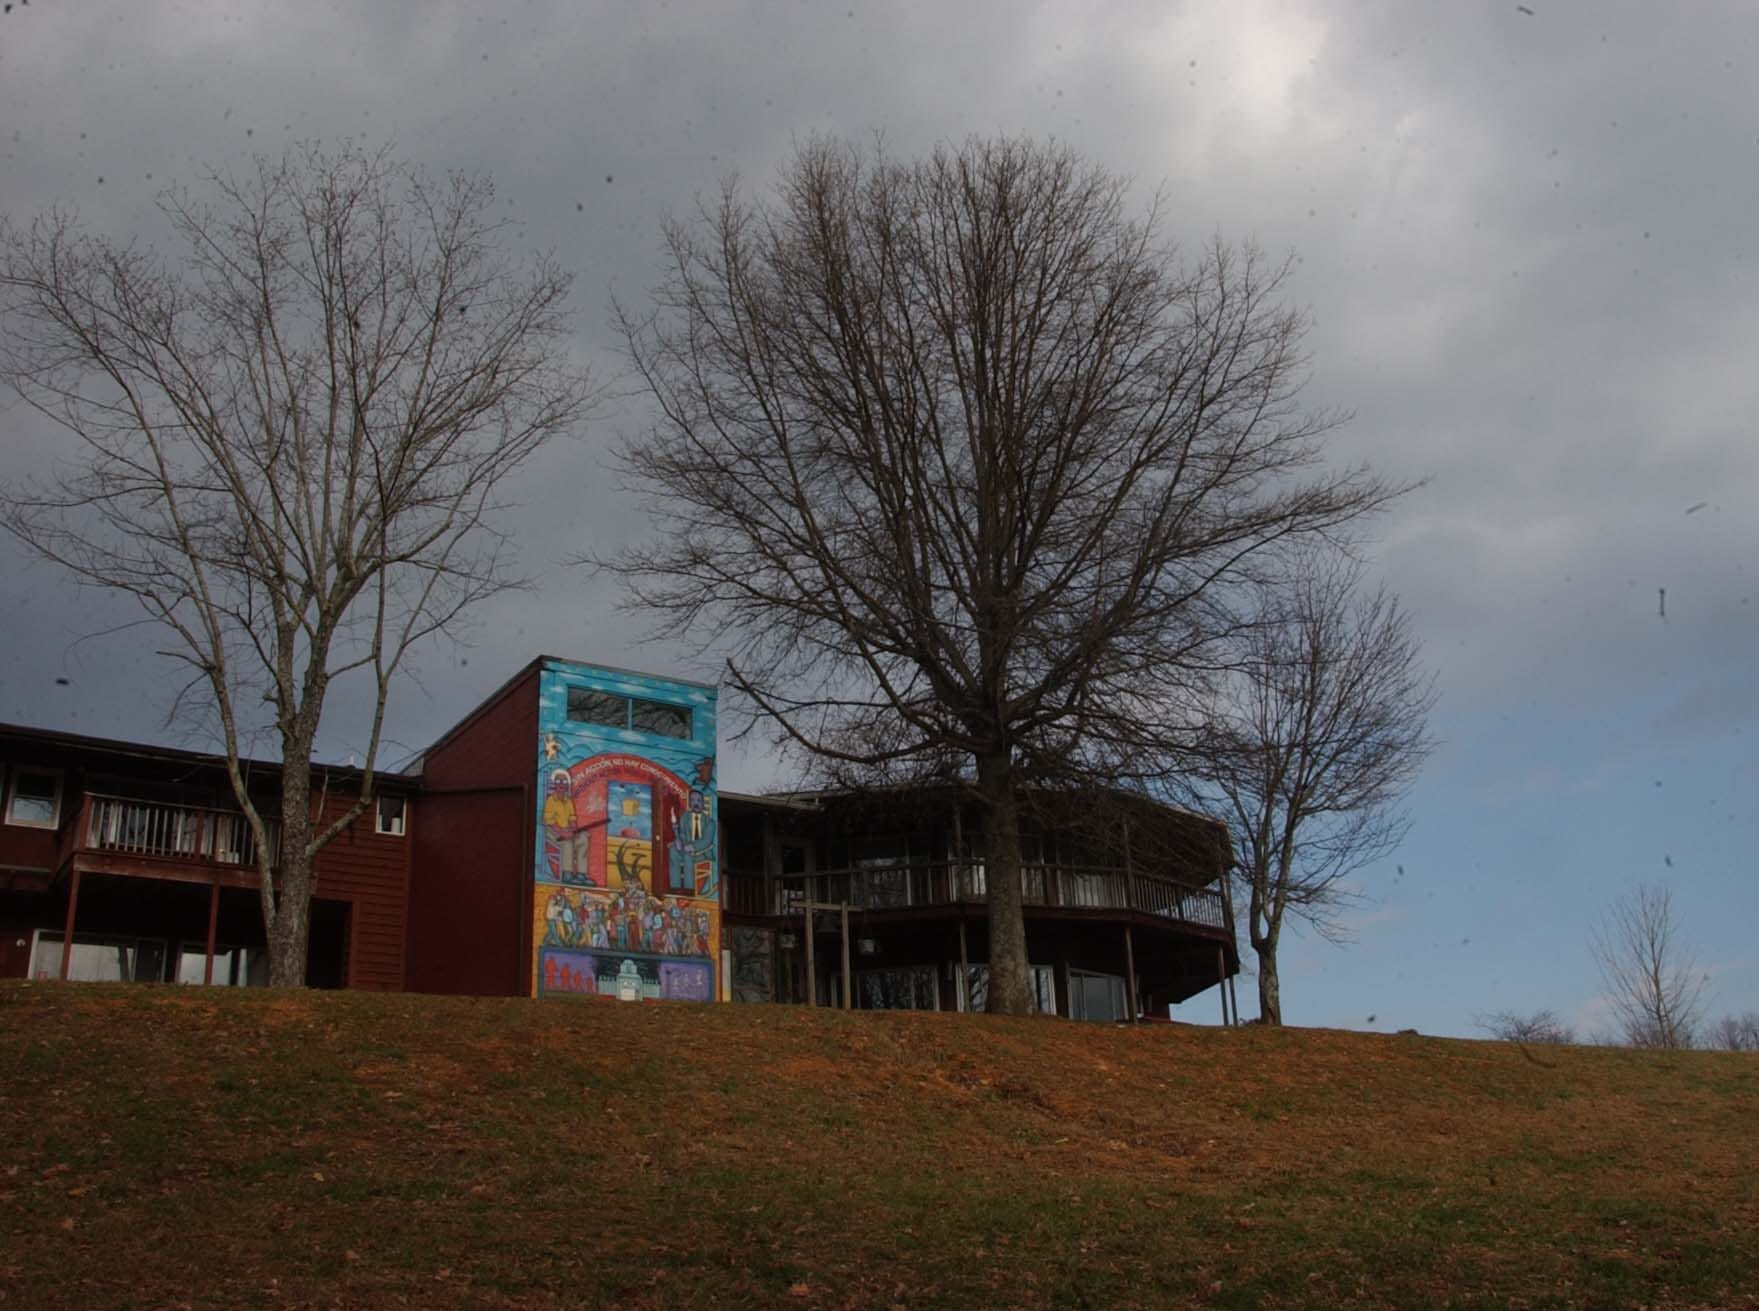 The Highlander Research and Educational Center in New Market is known for its social activism dating back over 50 years.  one wall of the workshop and conference building is decorated with a mural depicting the centers social activism.   Martin Luther King is included prominently in the mural. Jan. 14, 2003